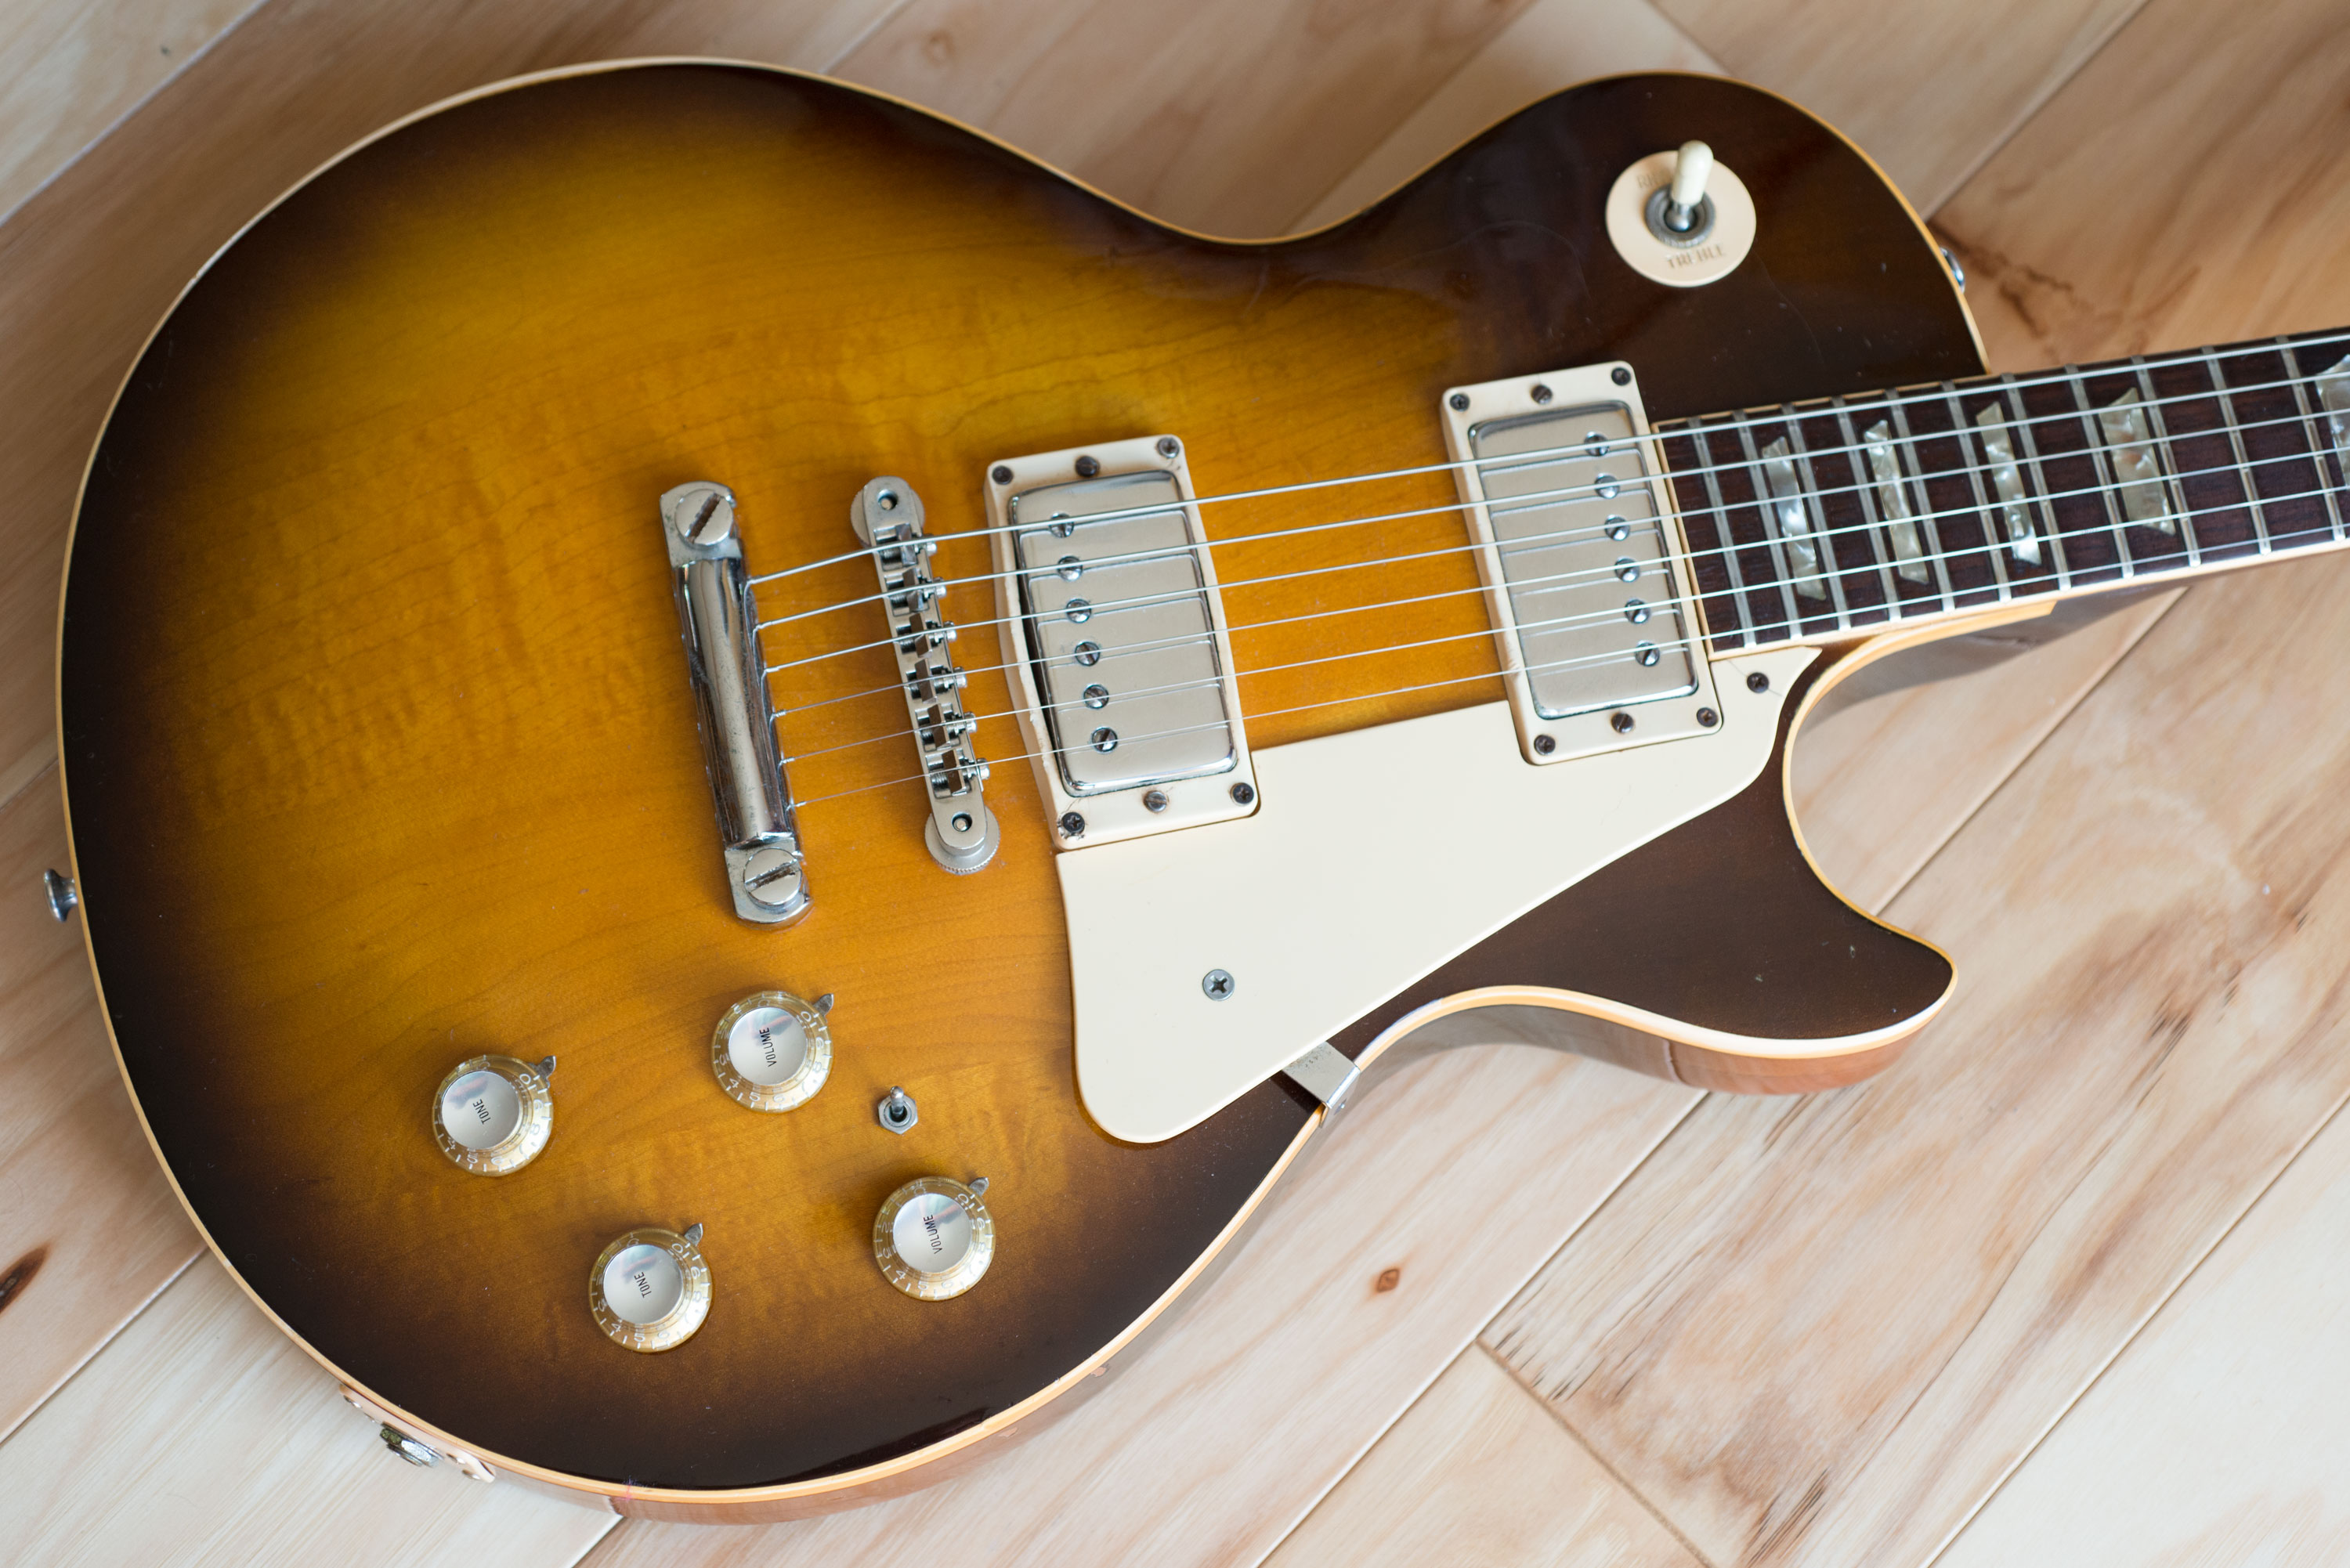 dating les paul guitars Determining the age of a gibson les paul guitar unlocks its value--but it takes more than the serial number on gibson les paul guitars is located on the back of.